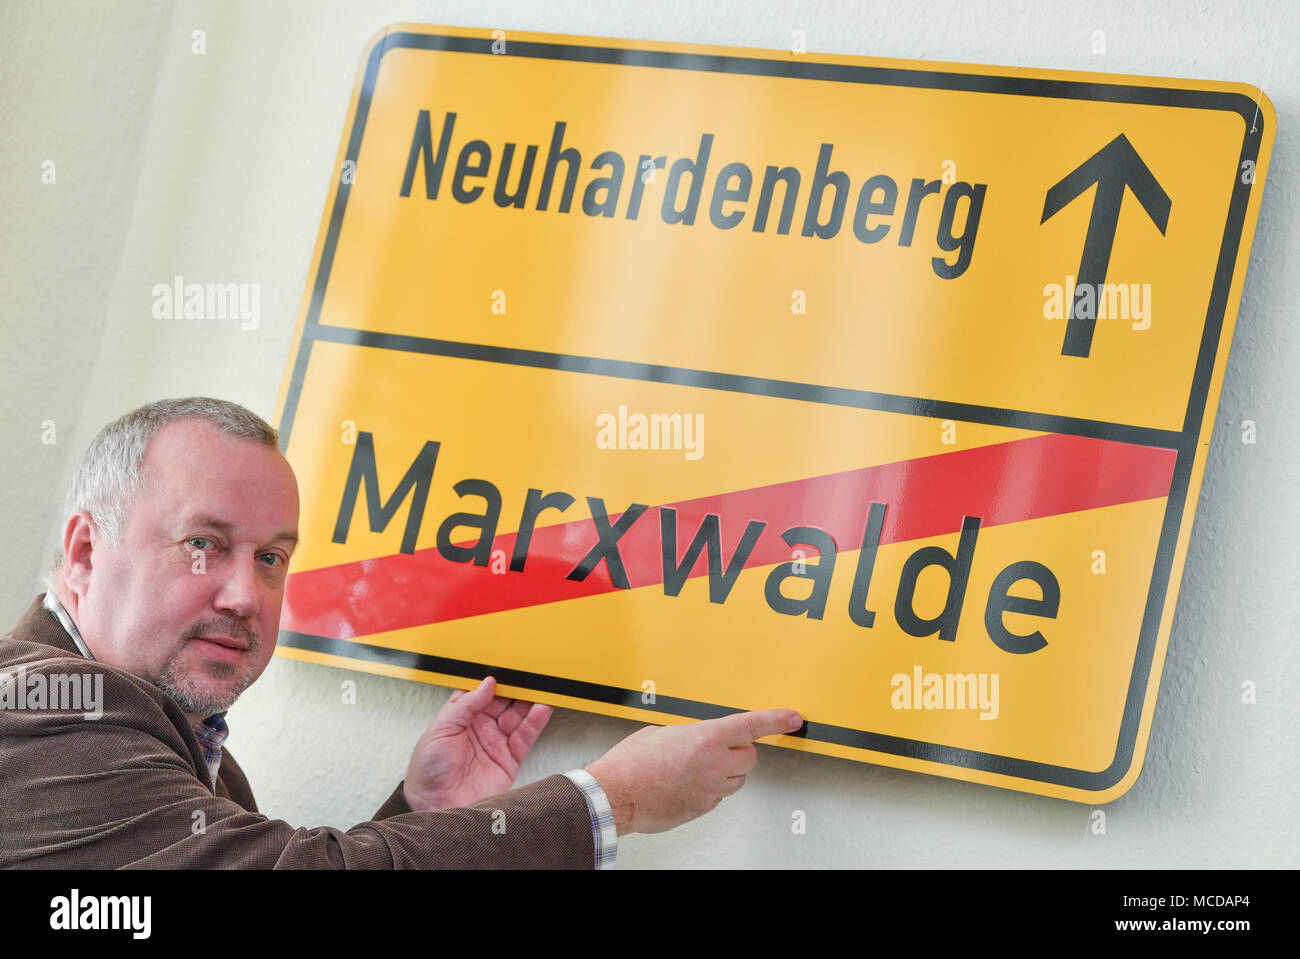 10 April 2018, Germany, Neuhardenberg: Dietmar Zimmermann, chairman of the local heritage association 'Heimatverein Neuhardenberg e.V.' places a road sign which reads 'Neuhardenberg - Marxwalde' on a wall of the local heritage museum. The town was previoulsy known as Marxwalde after German philosopher, economist and social theorist Karl Marx (May, 05 1818 - March, 14 1883) during the GDR era and renamed to Neuhardenberg after the fall of the Berlin Wall. Photo: Patrick Pleul/dpa-Zentralbild/dpa Stock Photo